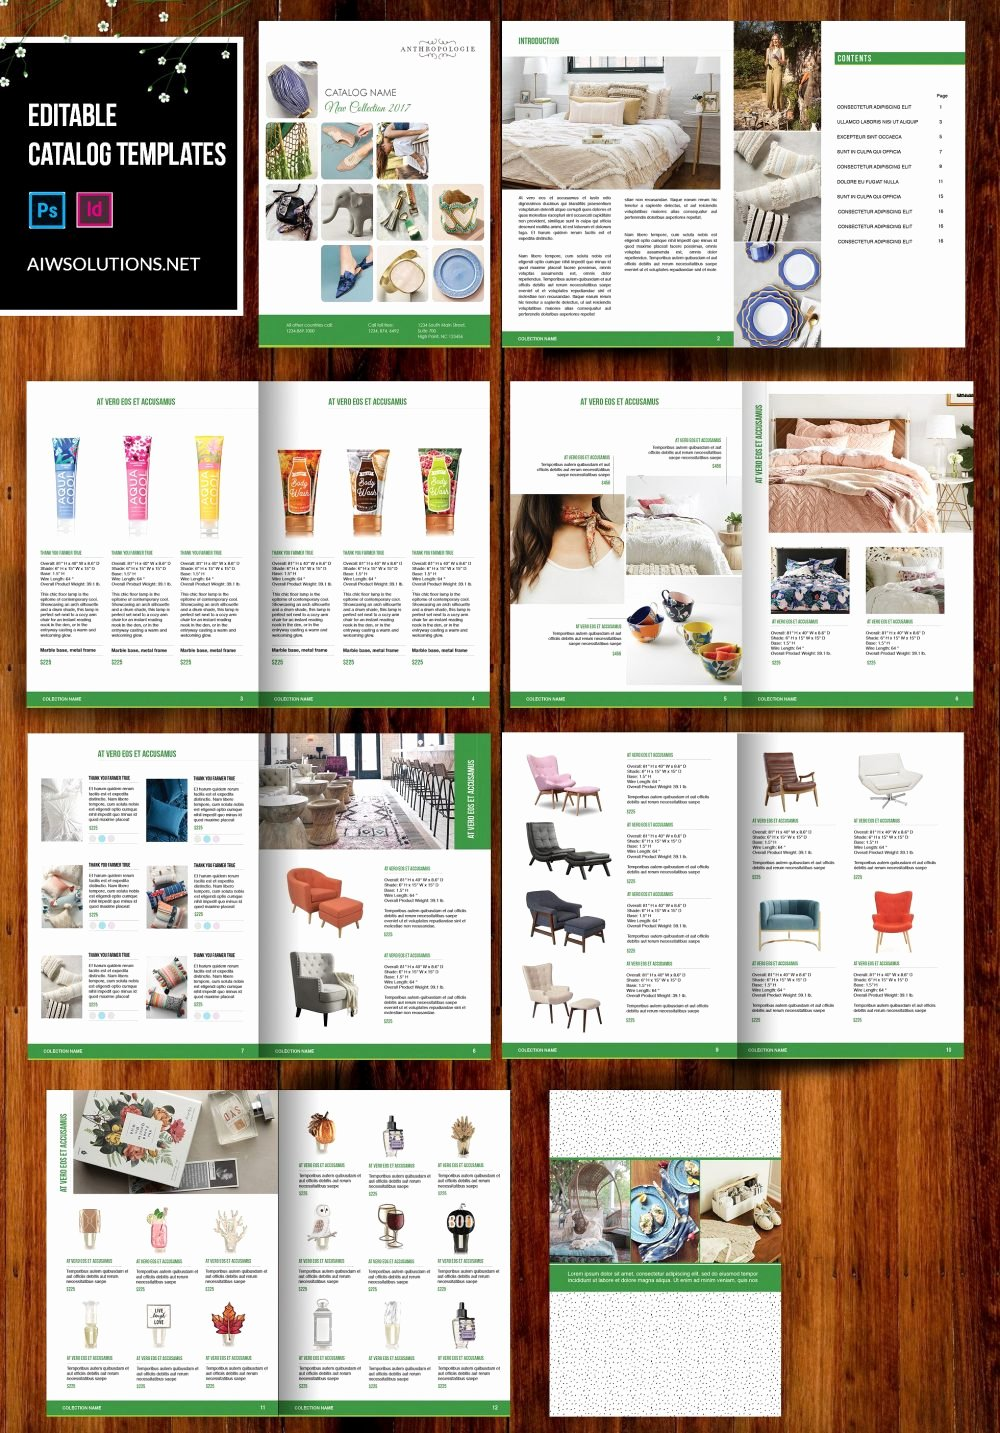 Product Catalogue Template Free New Product Catalog Template for Hat Catalog Shoe Catalog